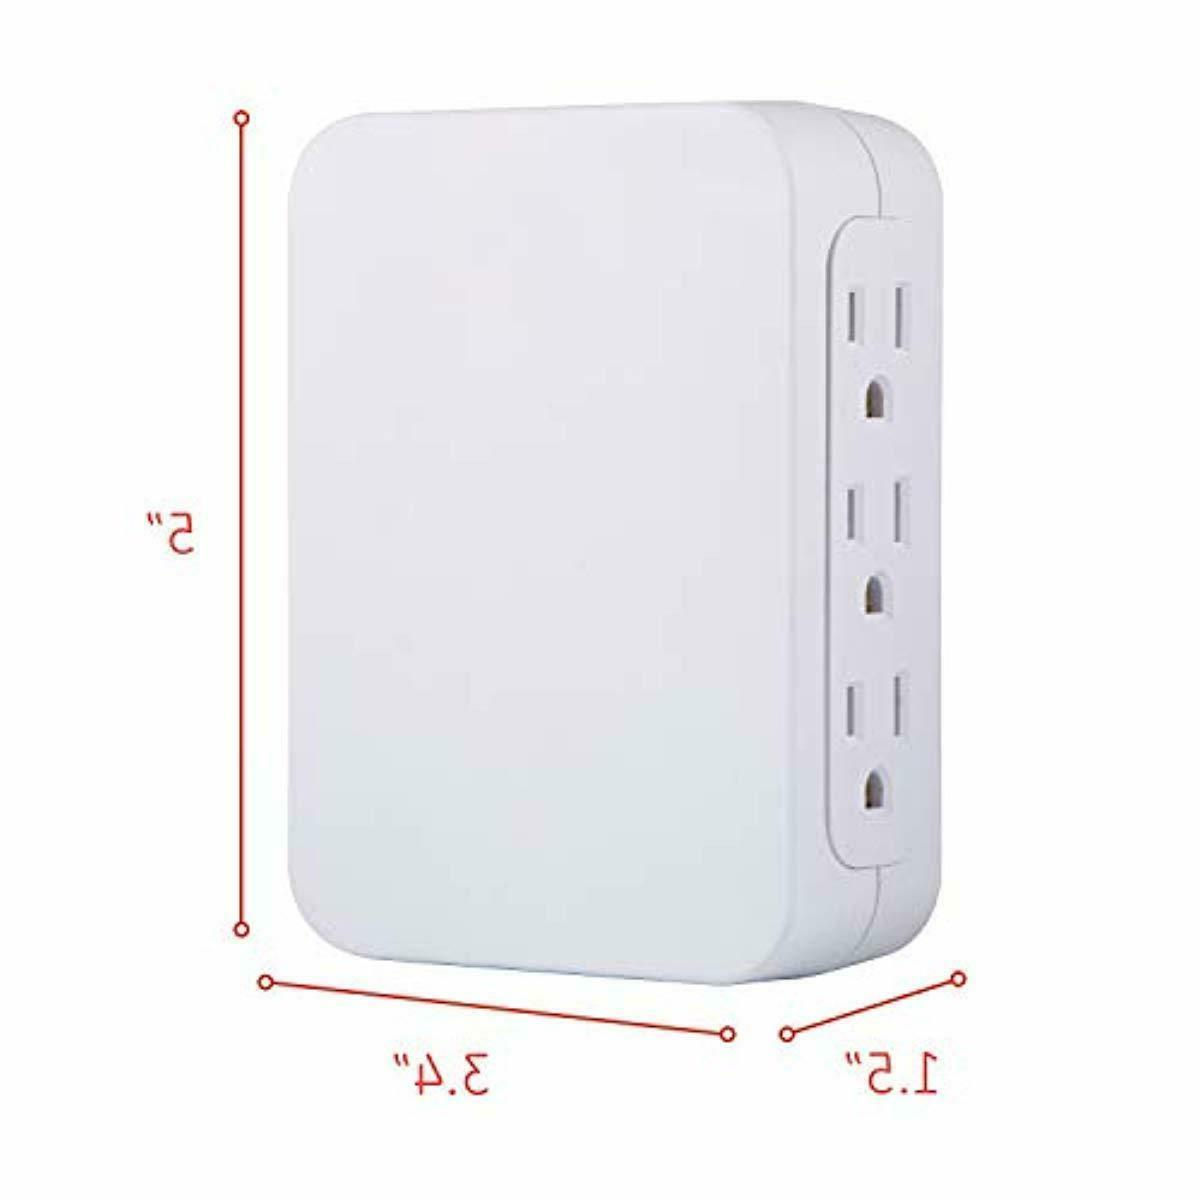 GE Pro 6 Wall Tap Side Power Adapter,